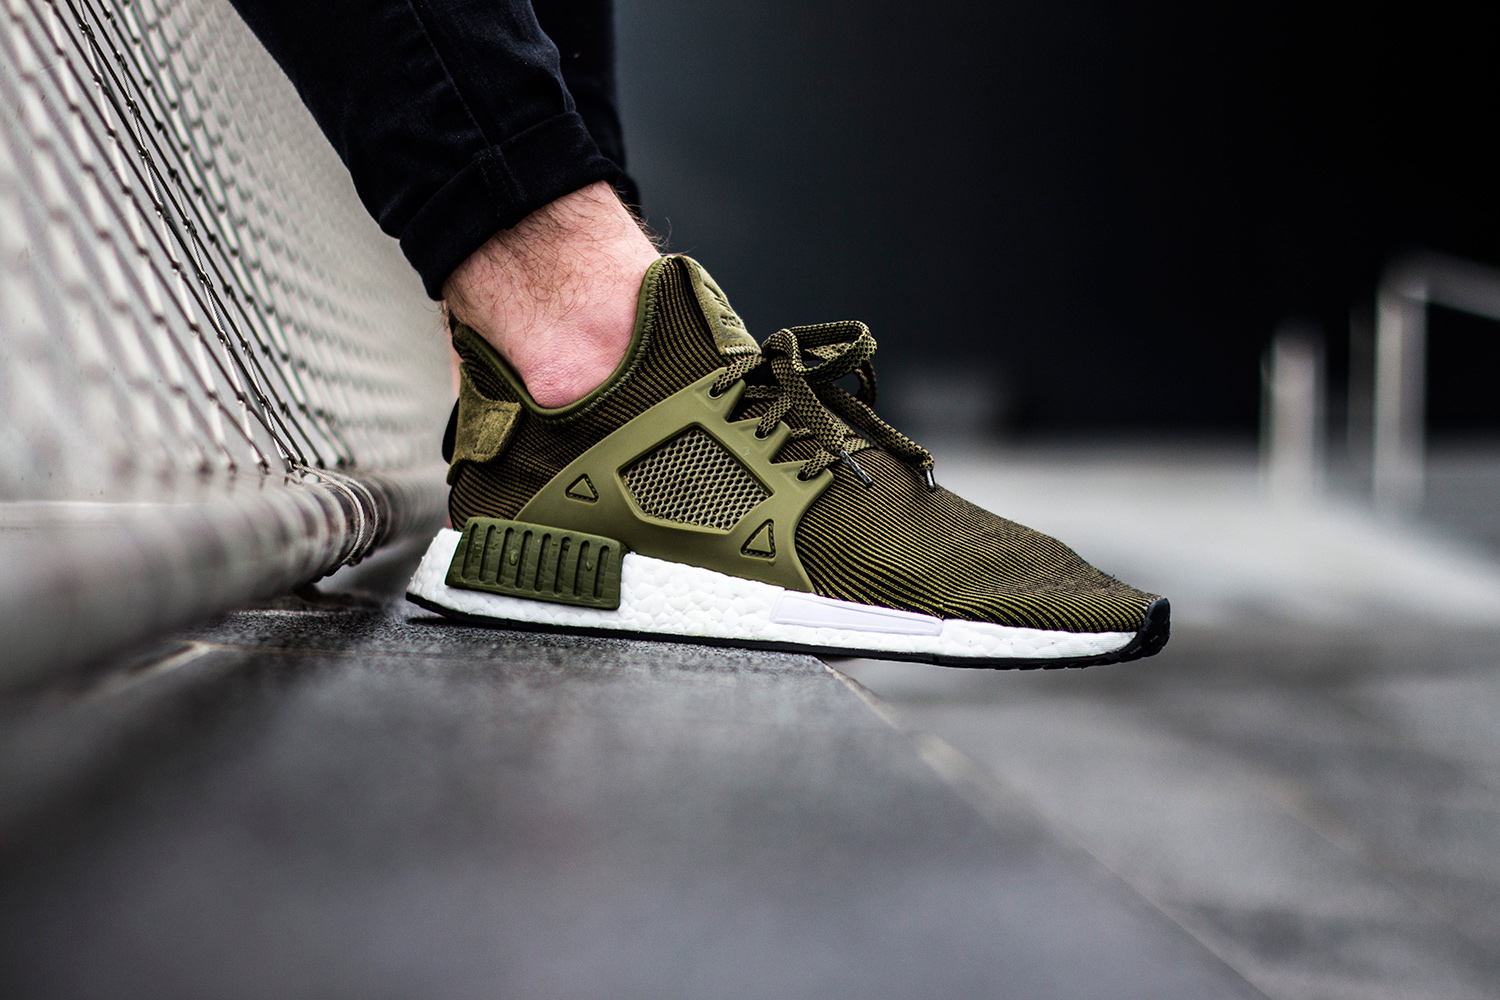 Adidas NMD XR1 Duck Camo women's and men's running shoes